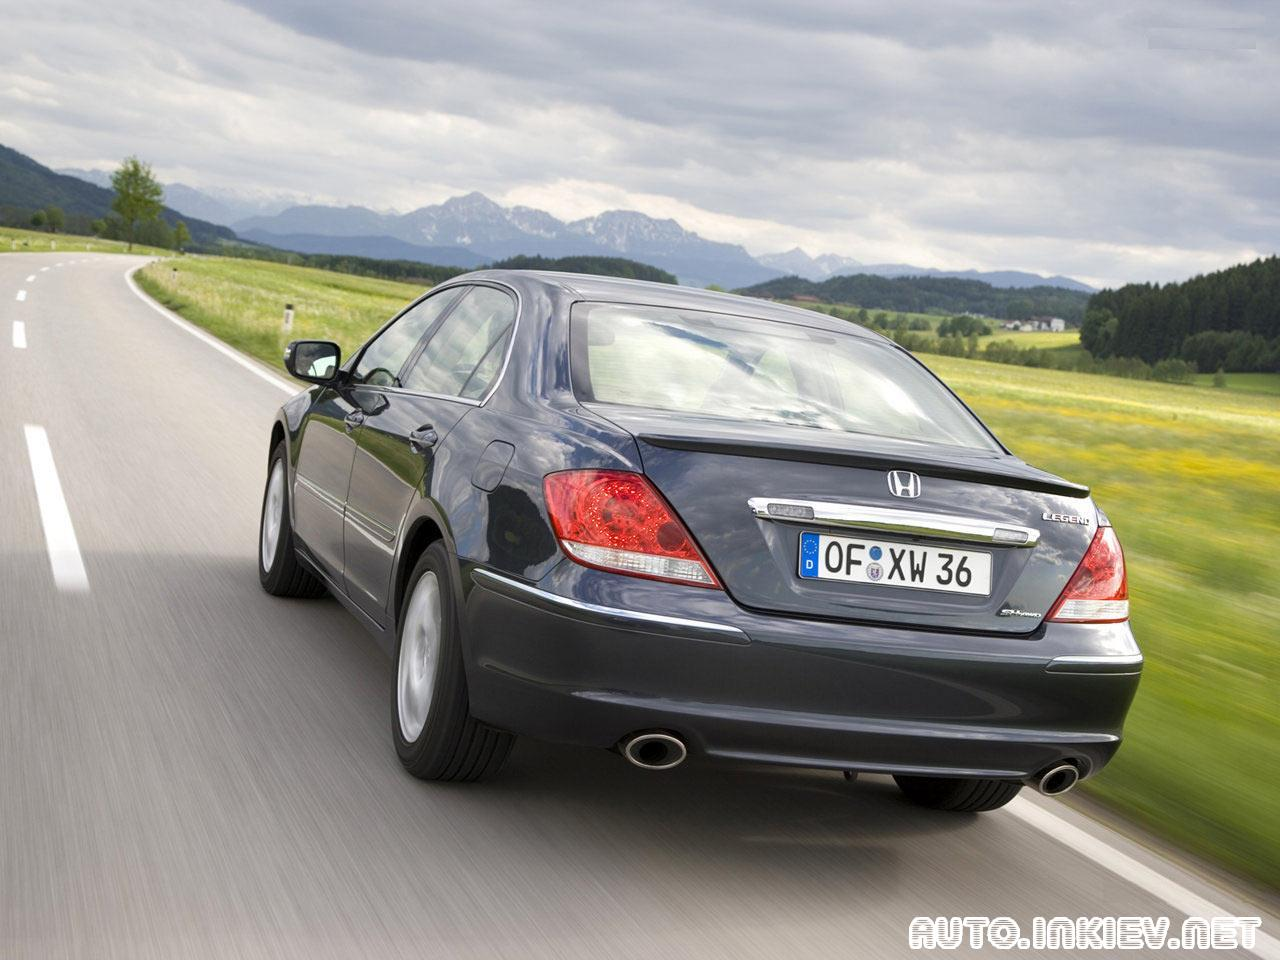 honda legend iv (kb1) 2010 wallpaper #11